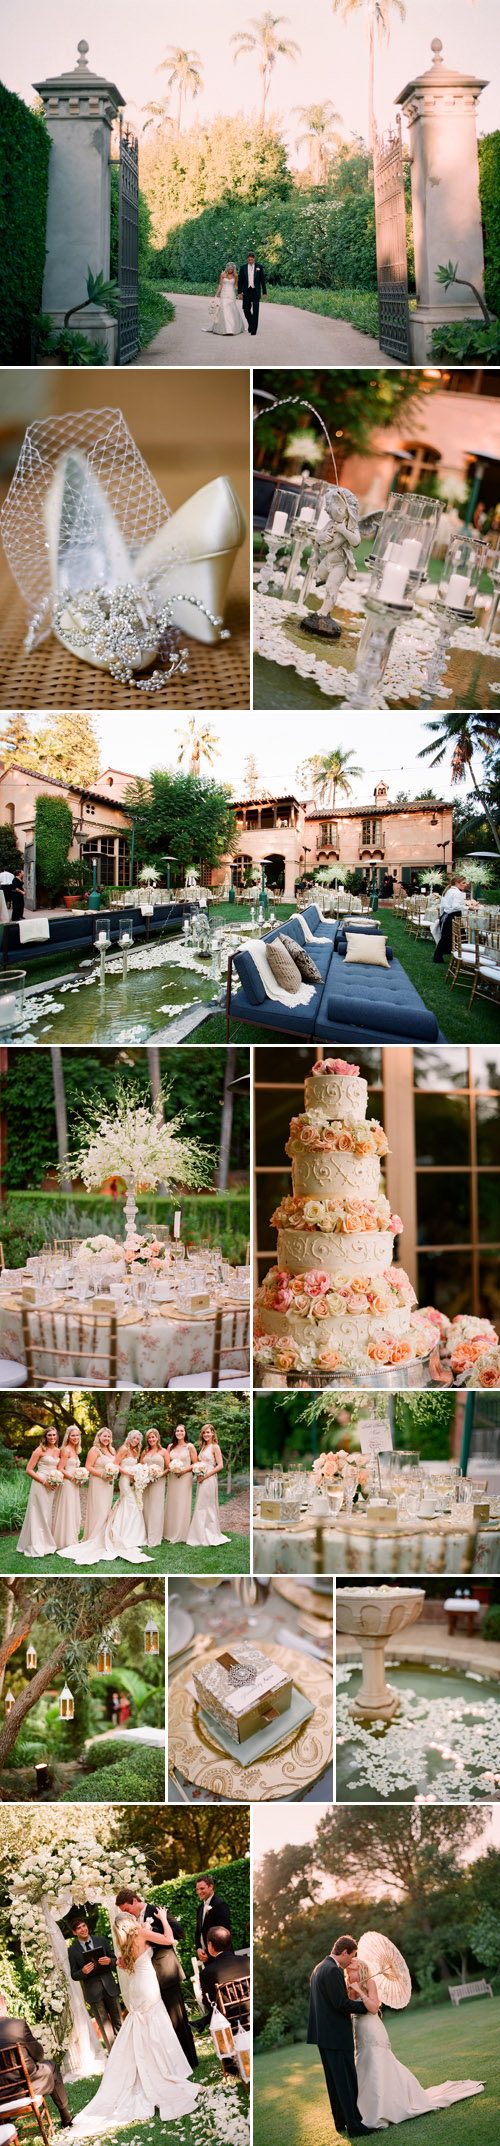 Anthropologie inspired wedding at the Hahn Estate, coordinated by Jill La Fleur, images by Megan Sorel Photography